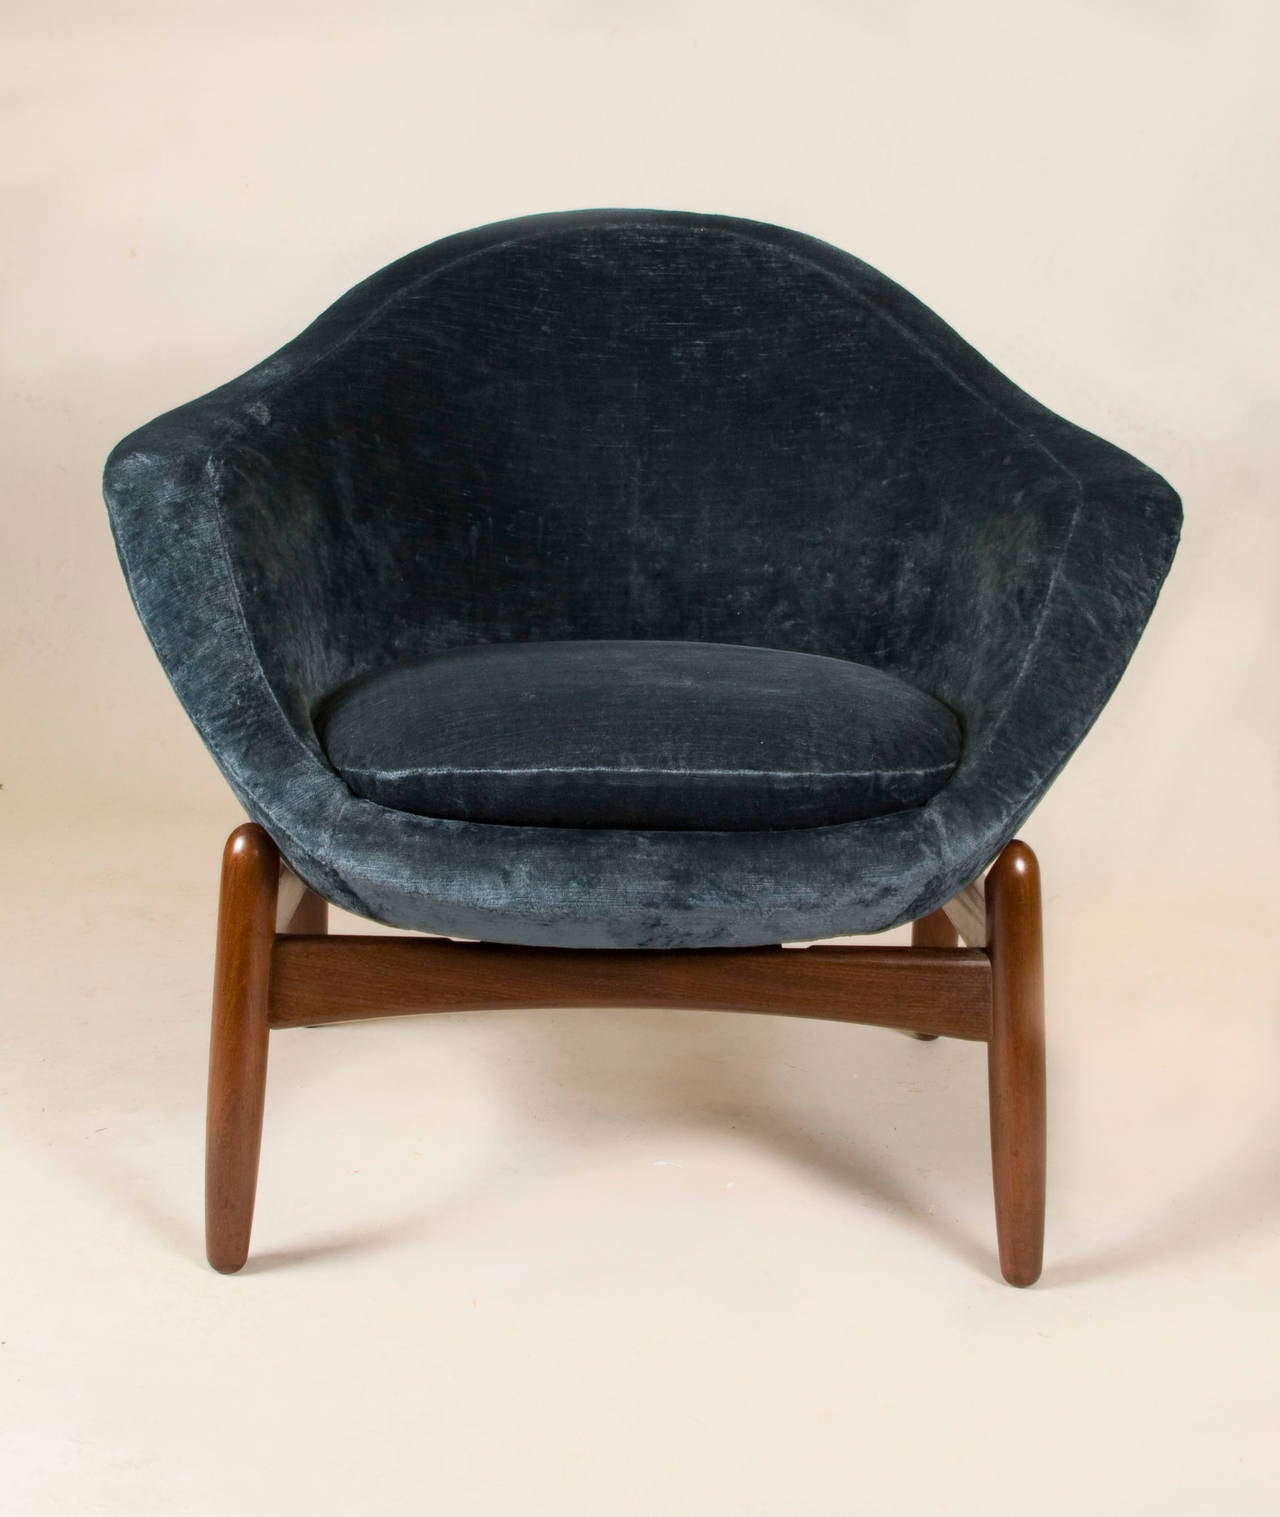 Rare Lounge Chair By Ib Kofod-Larsen For Sale At 1stdibs